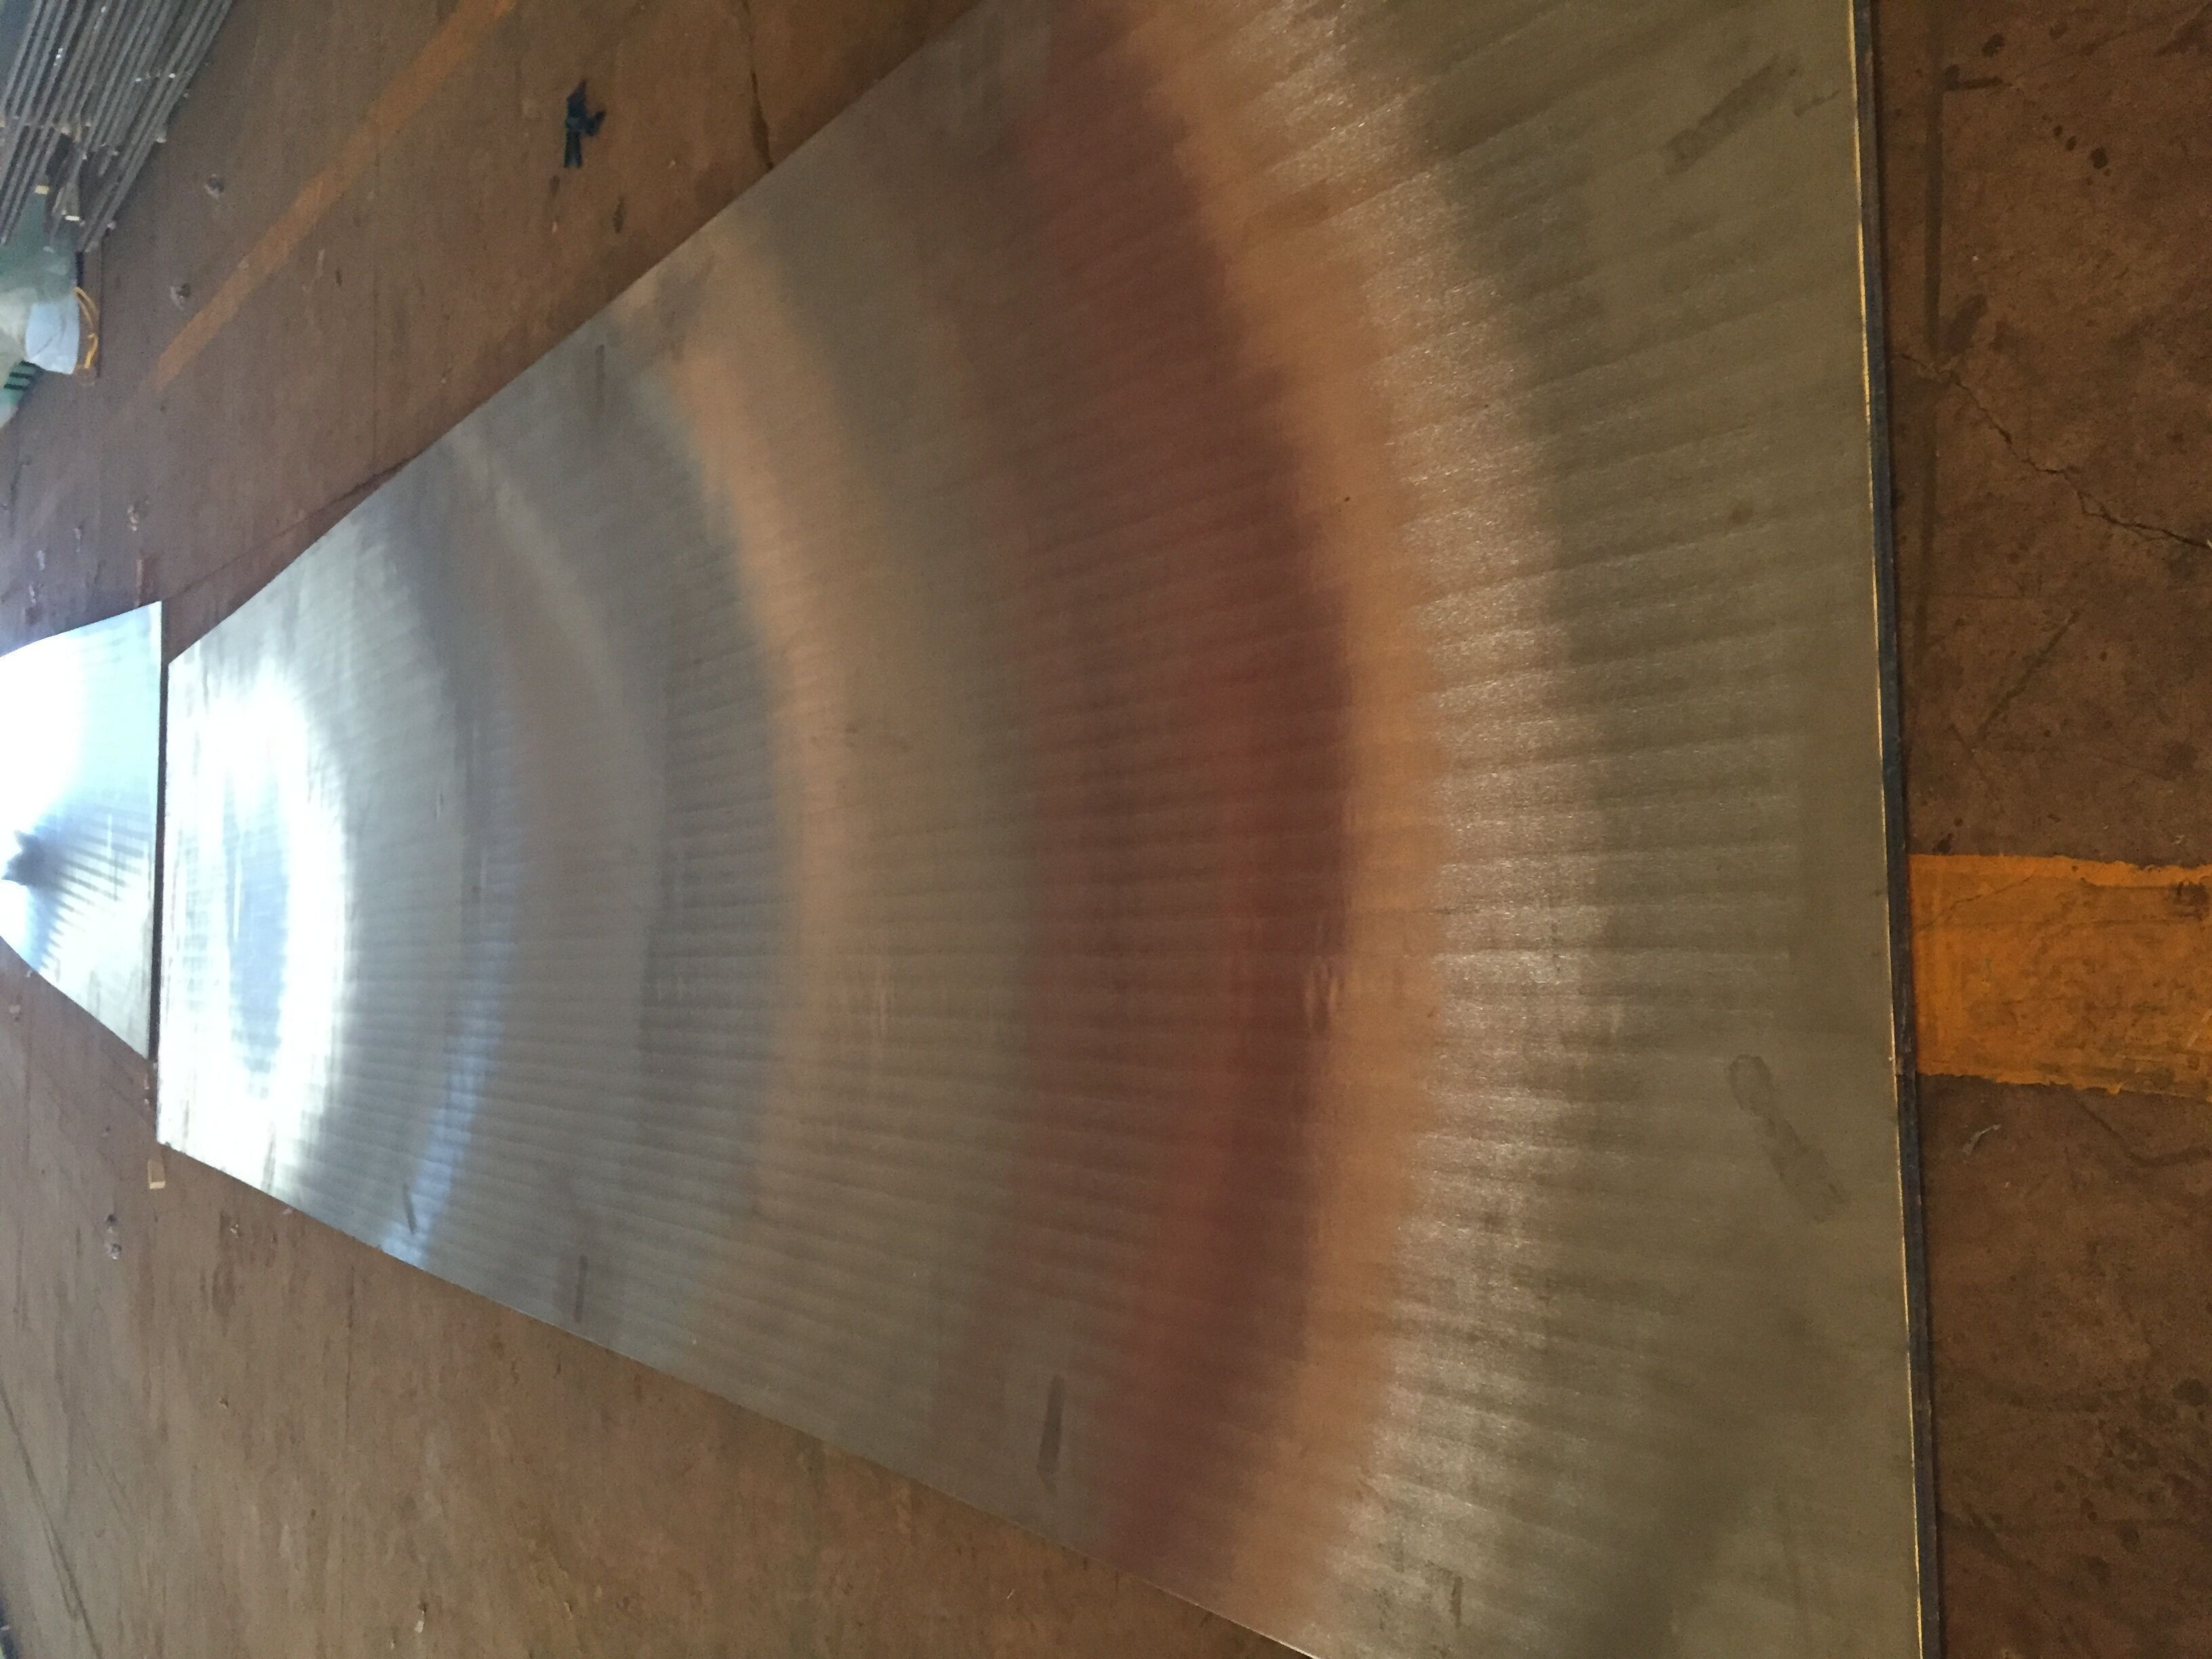 Carbon steel and stainless steel cladded material